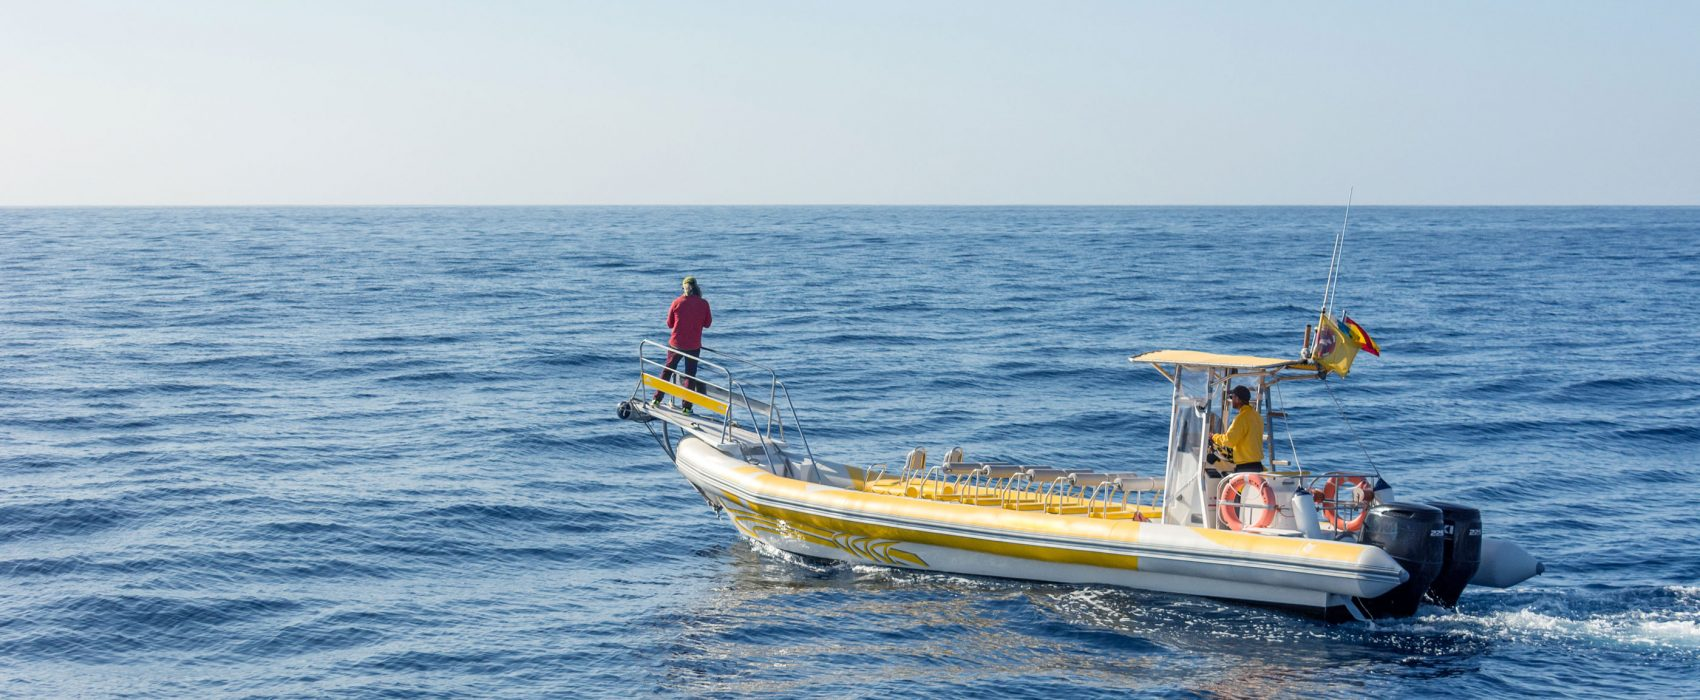 Yellow and White Boat alone in the Ocean with two fishermen